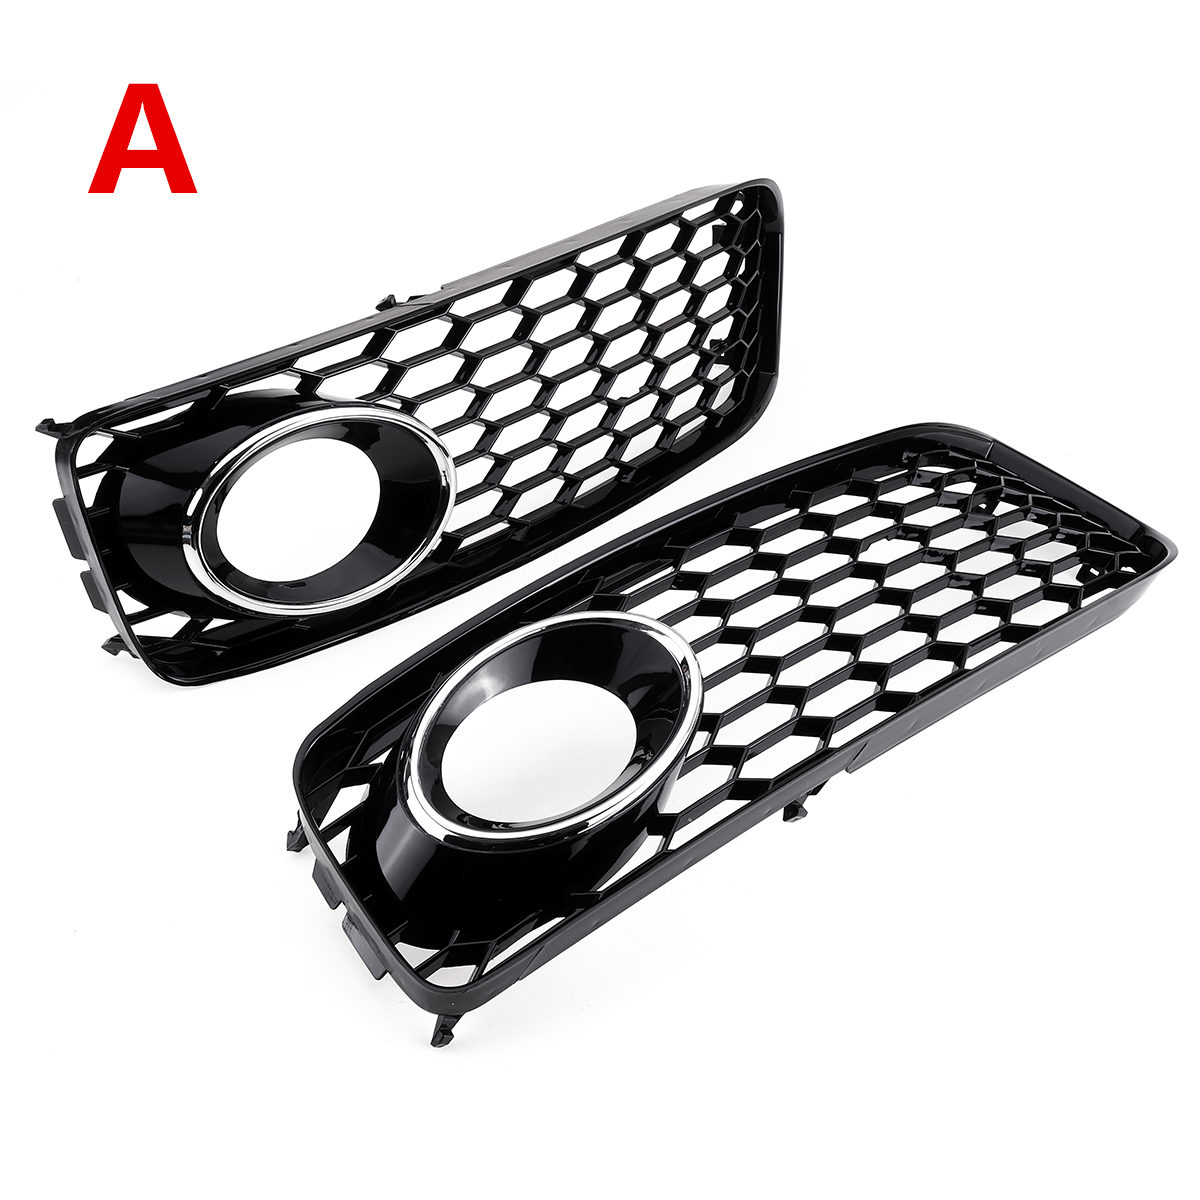 Black/Chrome Silver 1Pair Car Fog Light Lamp Cover Honeycomb Mesh Hex Front Grille Grill For Audi A5 S-Line/S5 B8 RS5 2008-2012